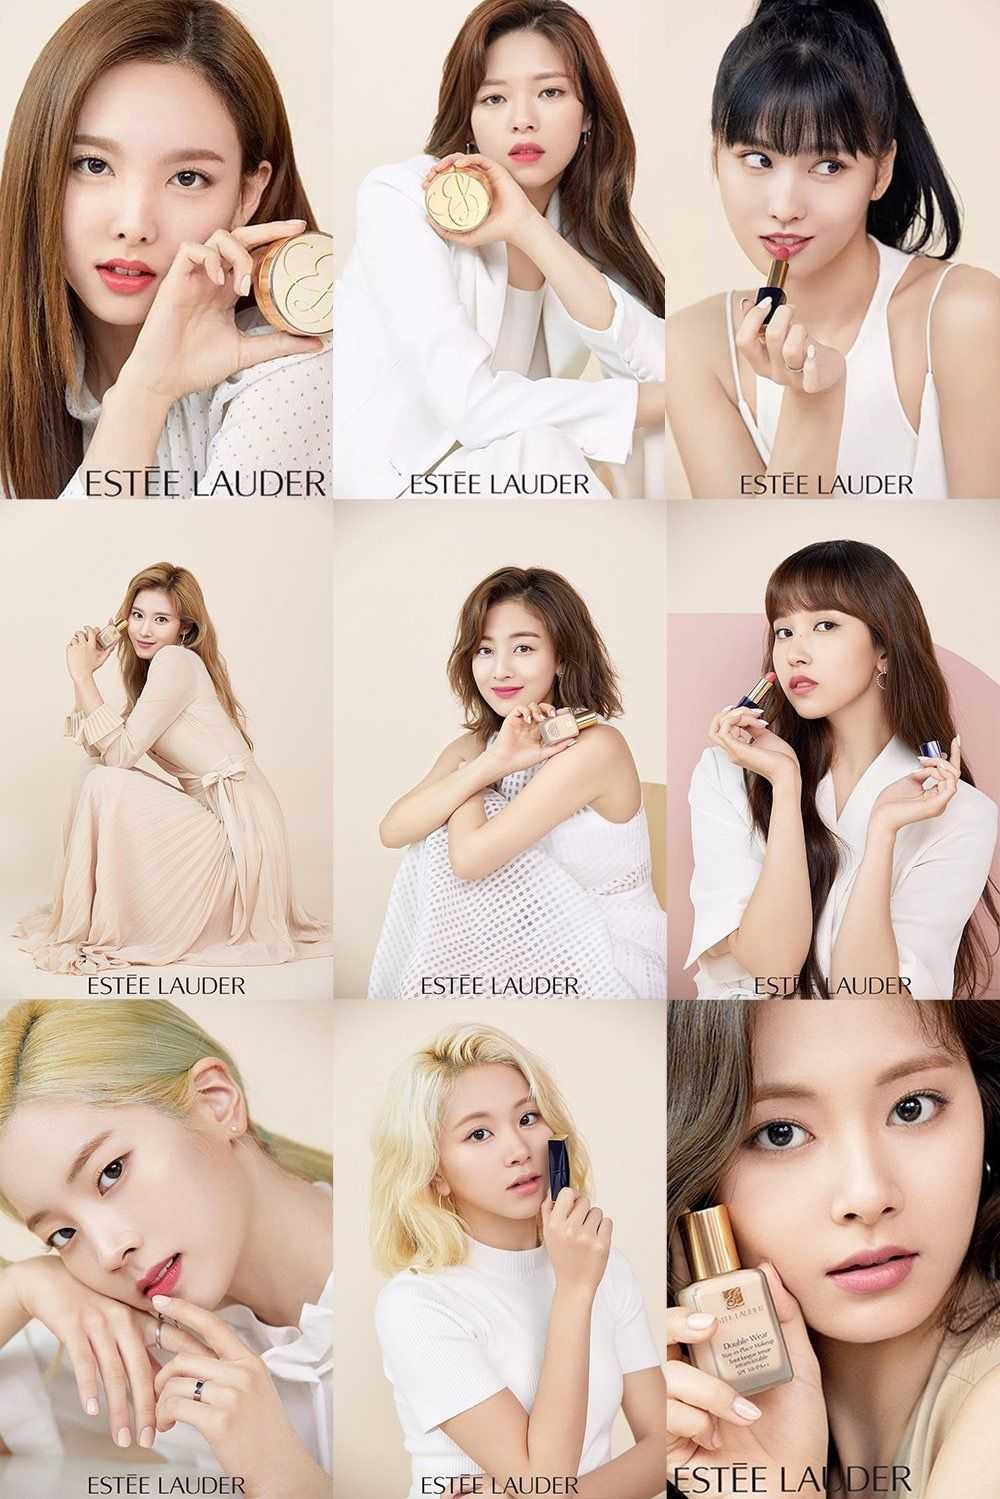 Twice For Estee Lauder Kpop Girl Groups Twice Kpop Girls